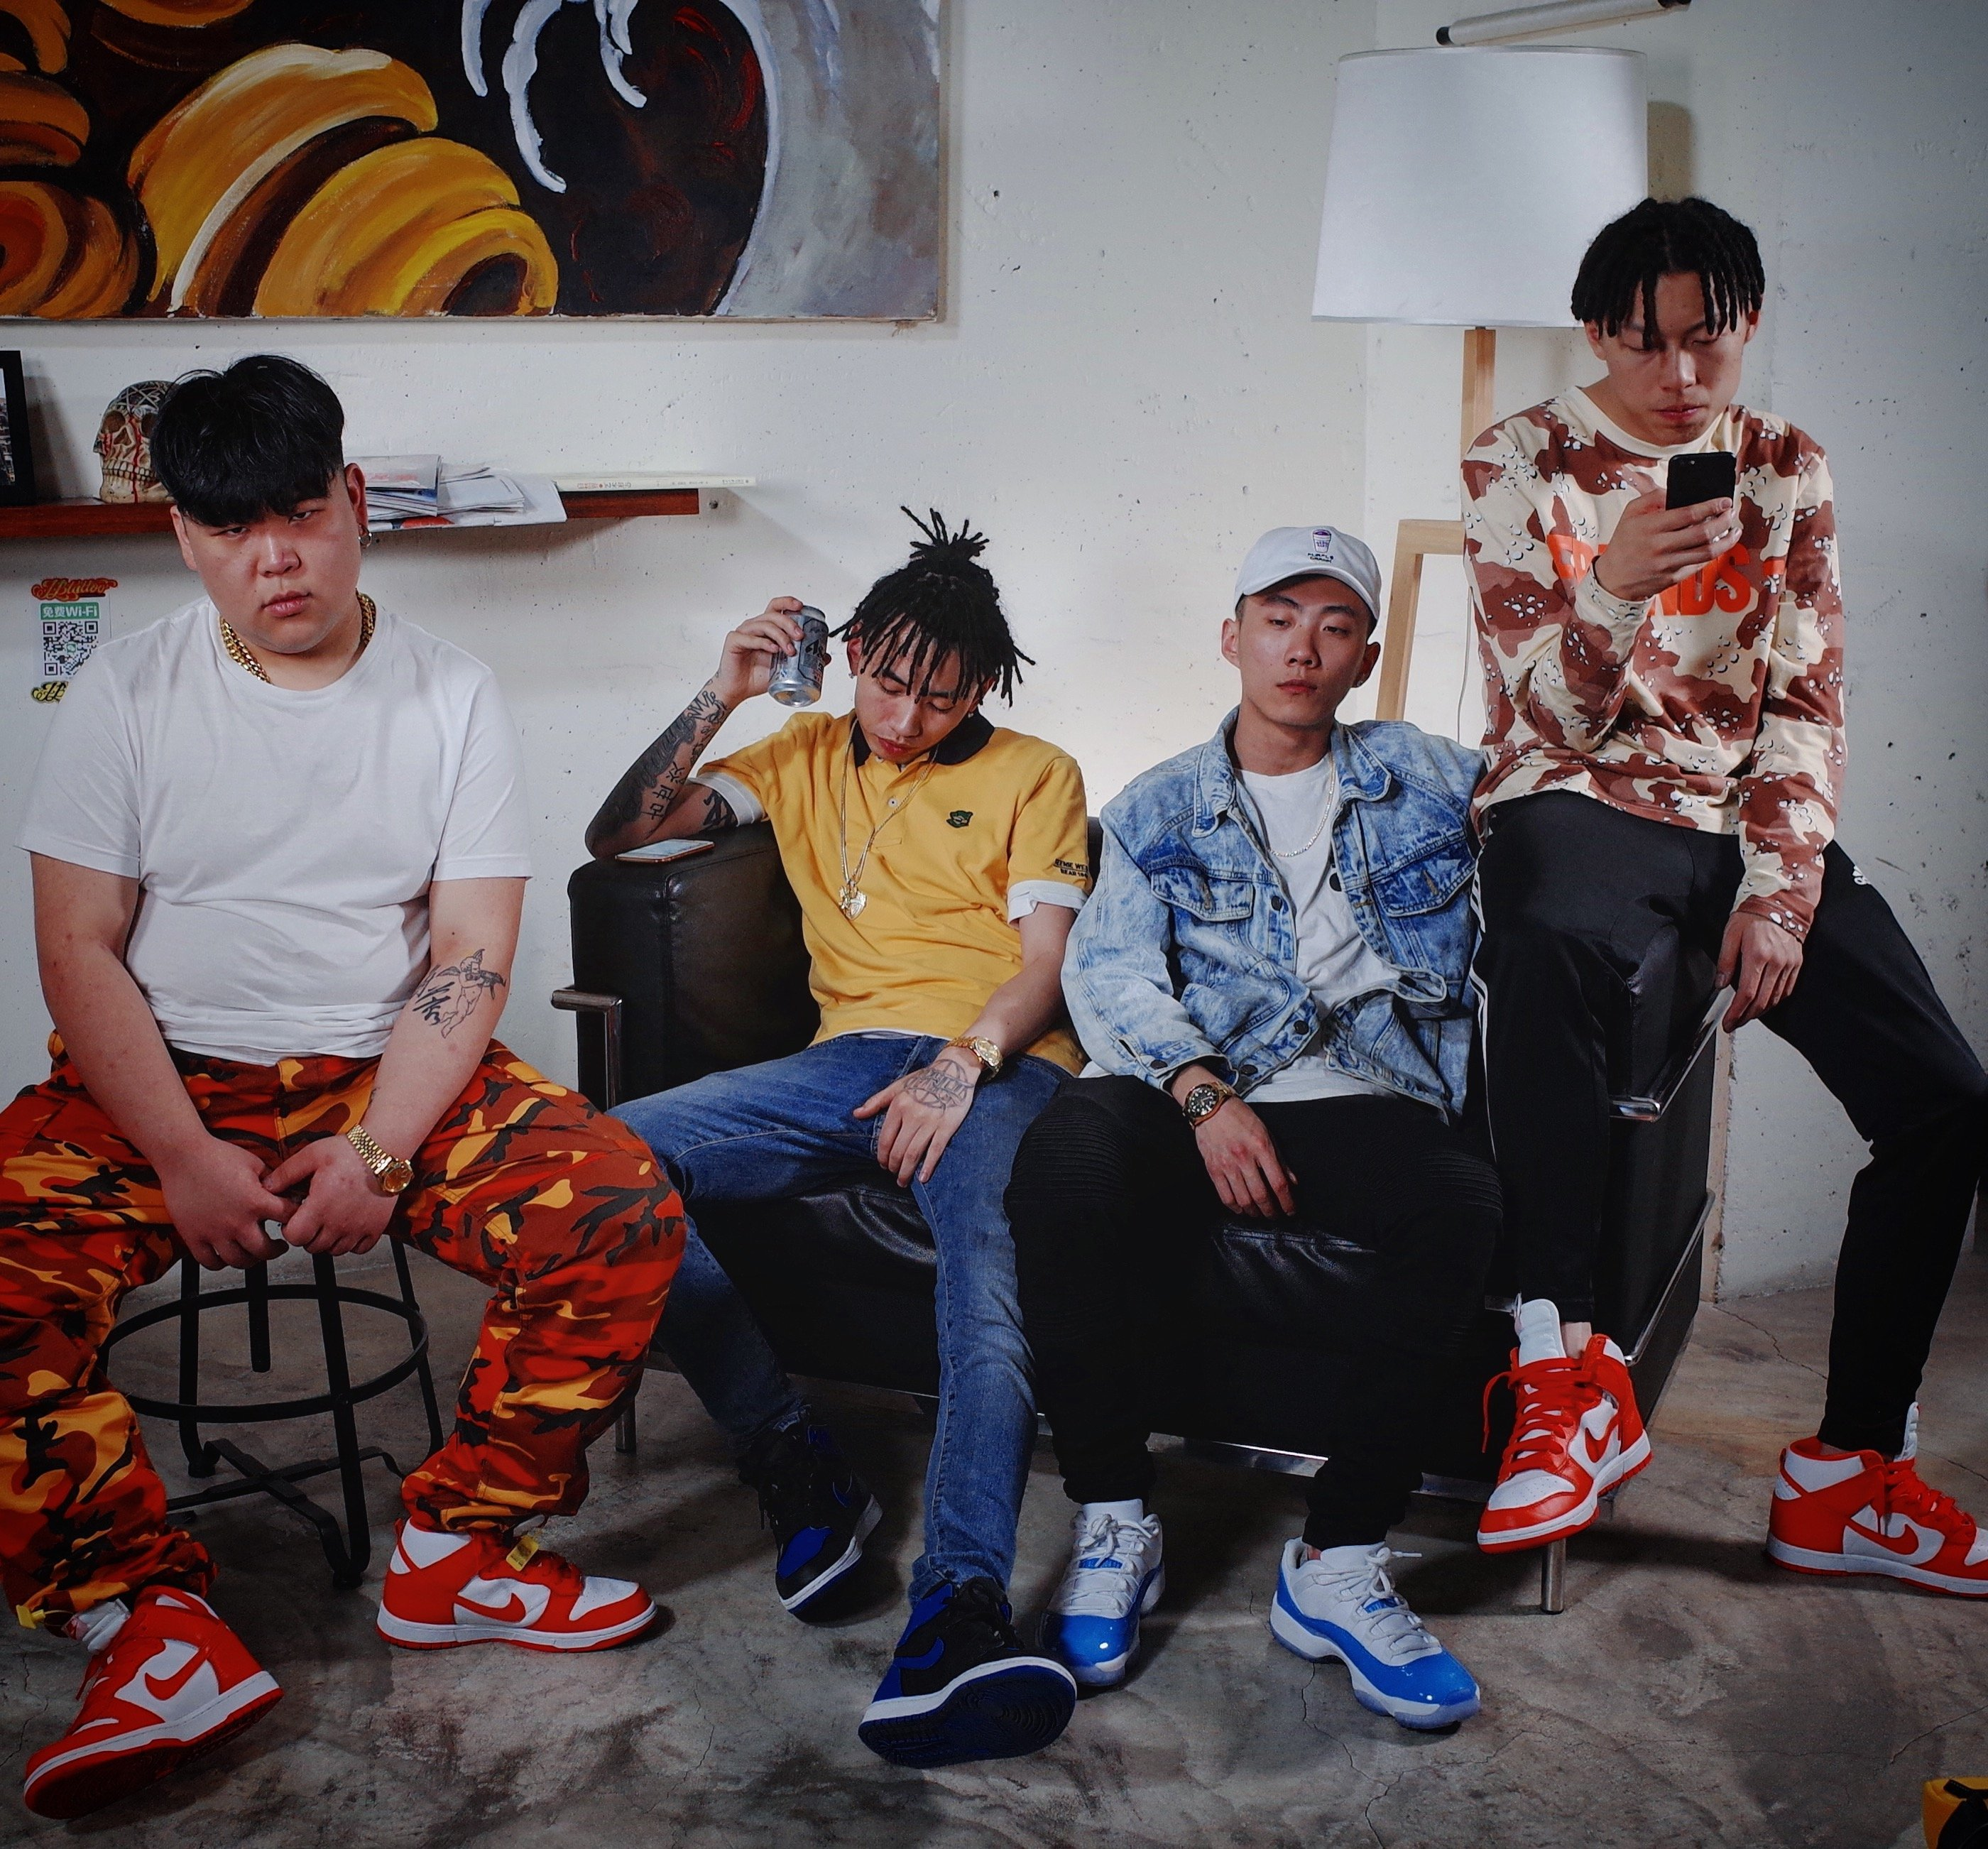 Why Higher Brothers Wasn't Censored by China's Government